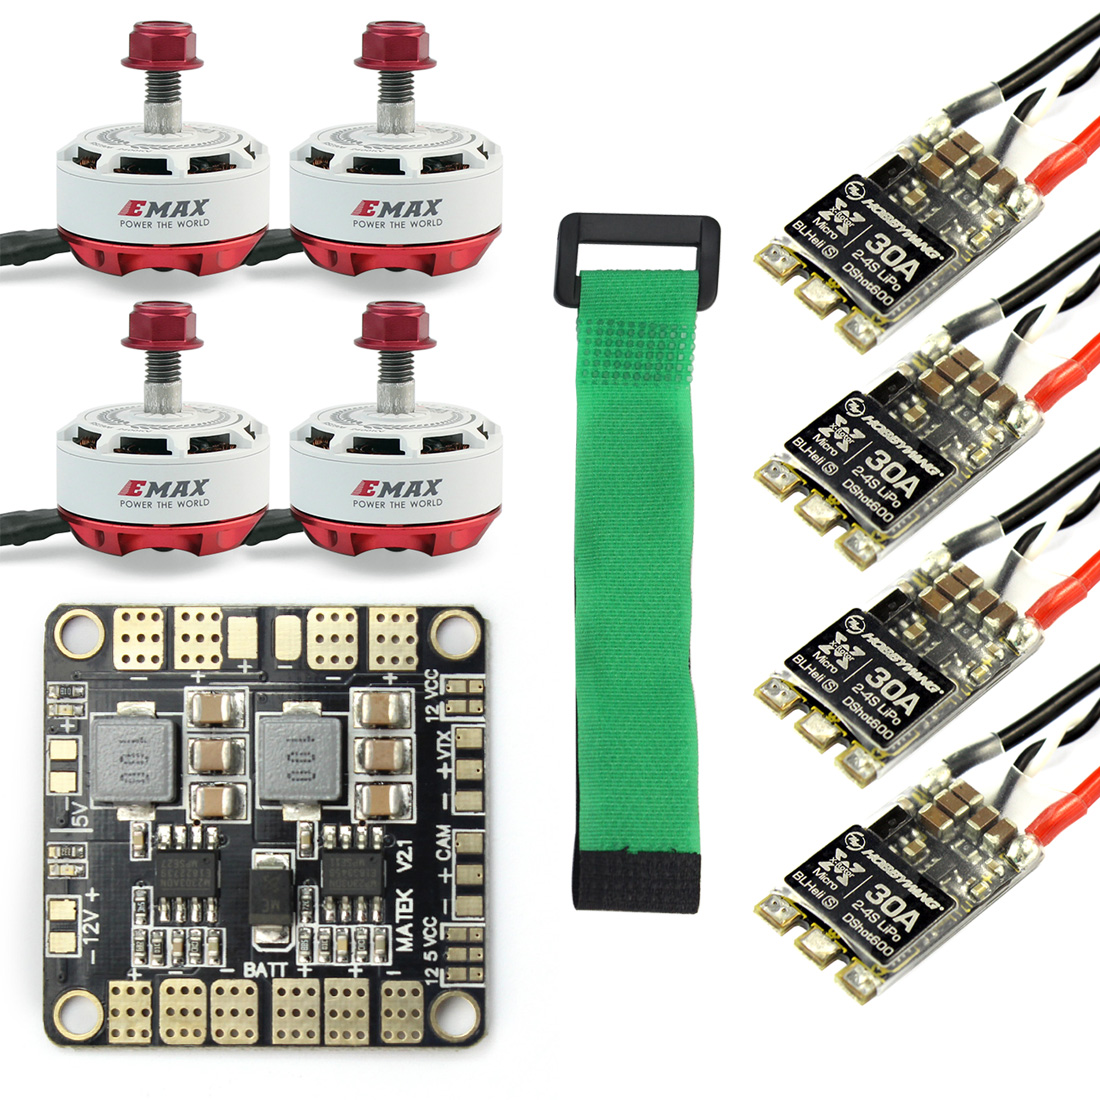 Mini RC Racing Drone Brushless Motor ESC Combo 4x EMAX RS2306-2750KV & HobbyWing XRotor Micro BLHeli-s 30A + Power Distribution emax f4 magnum tower parts bullet 30a 4 in 1 blheli s esc 2 4s built in current sensor for rc multicopter models motor frame